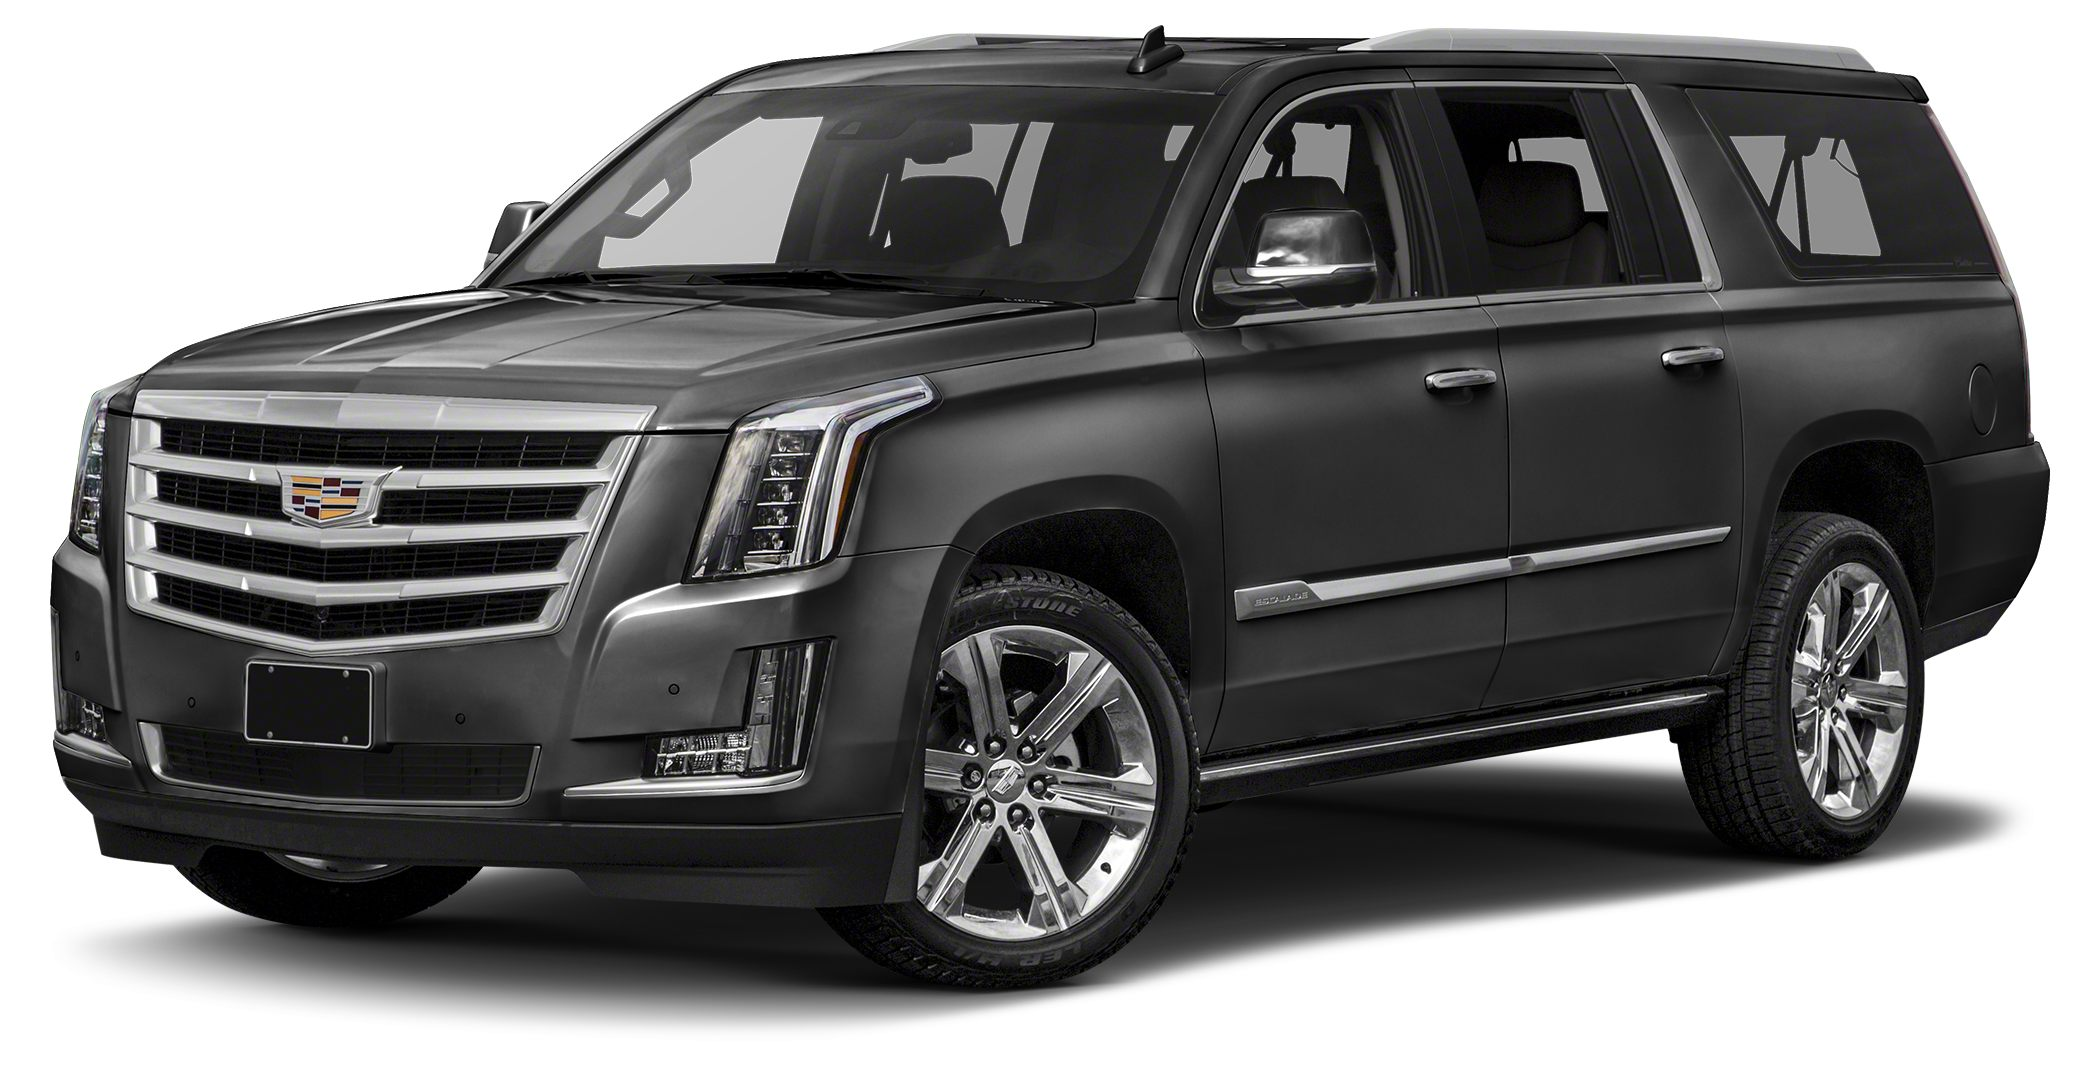 2018 Cadillac Escalade ESV Premium Luxury FREE DELIVERY ANY VEHICLE ANYWHERE IN FLORIDA Standard f